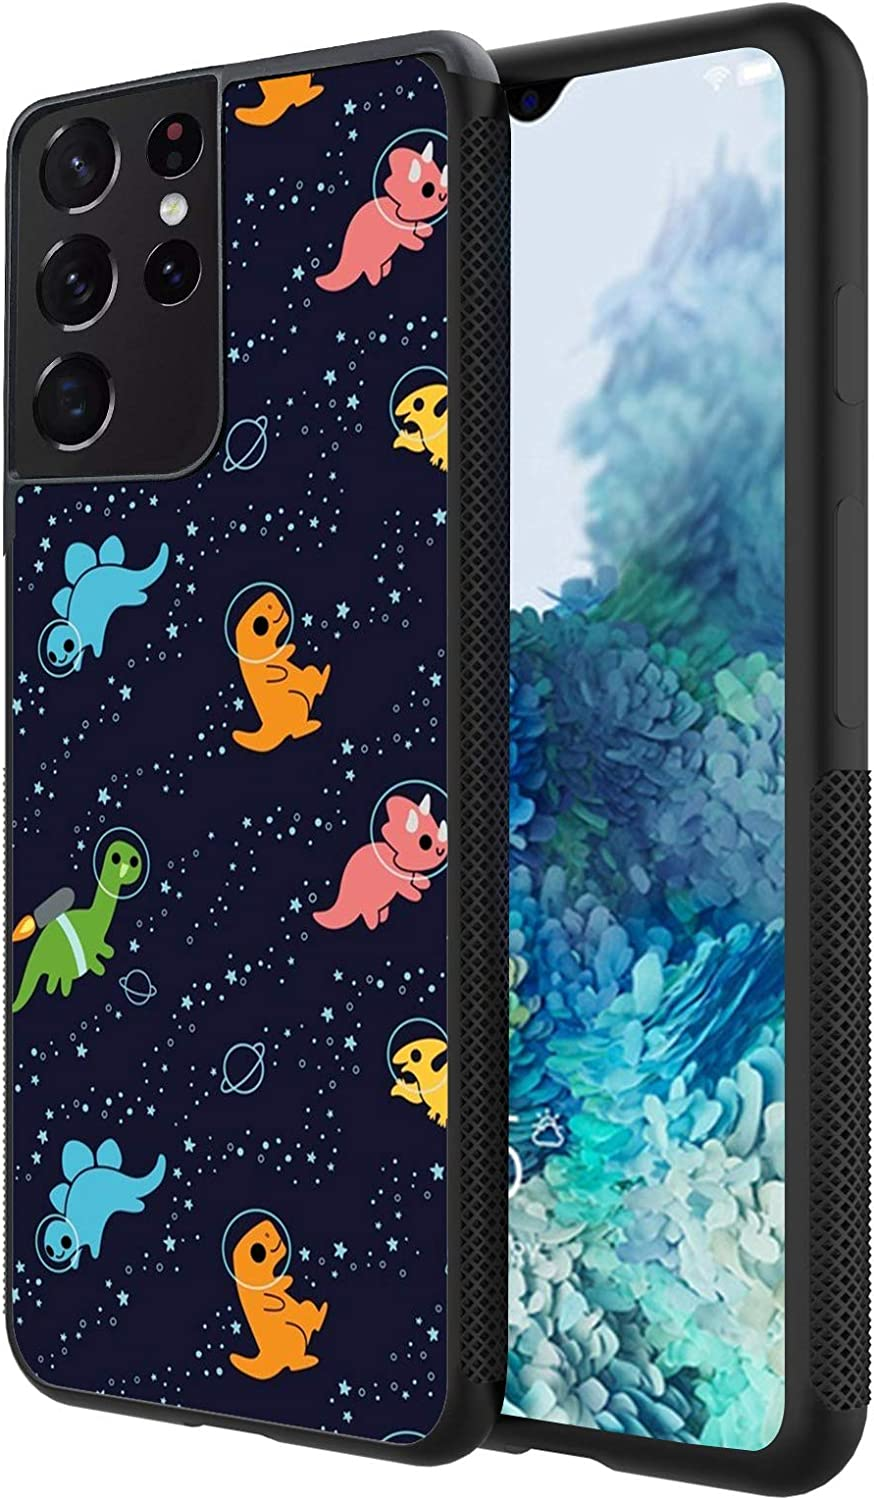 Yunan Case for Samsung Galaxy S21 Ultra, Black Dinosaurs in Space Pattern Design for Men and Women,Anti Slip TPU Bumper Shockproof Cover Case for Samsung Galaxy S21 Ultra